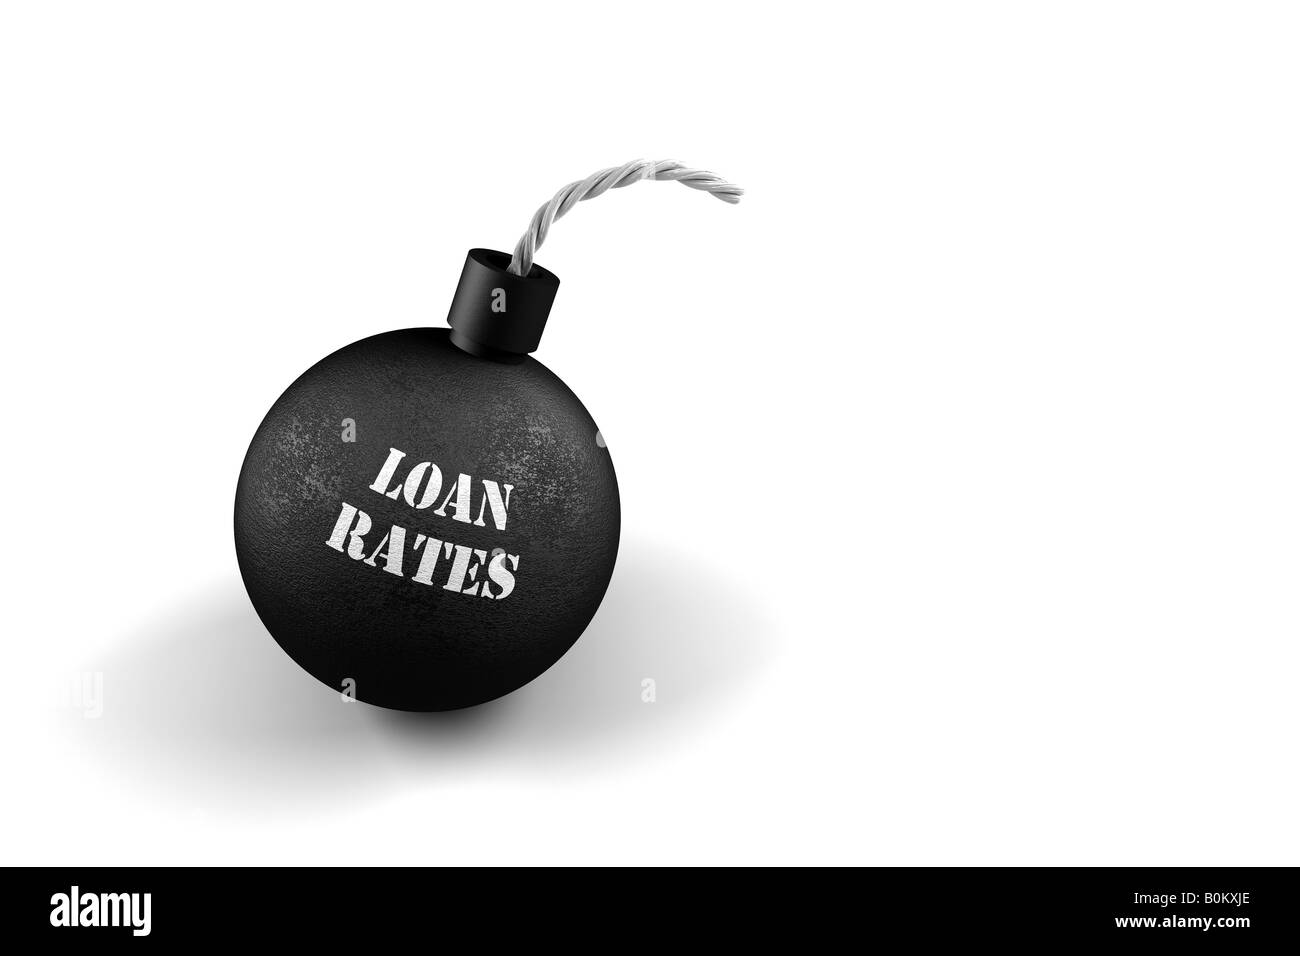 Exploding Loan Rates conceptual image for exploding loan rates - Stock Image